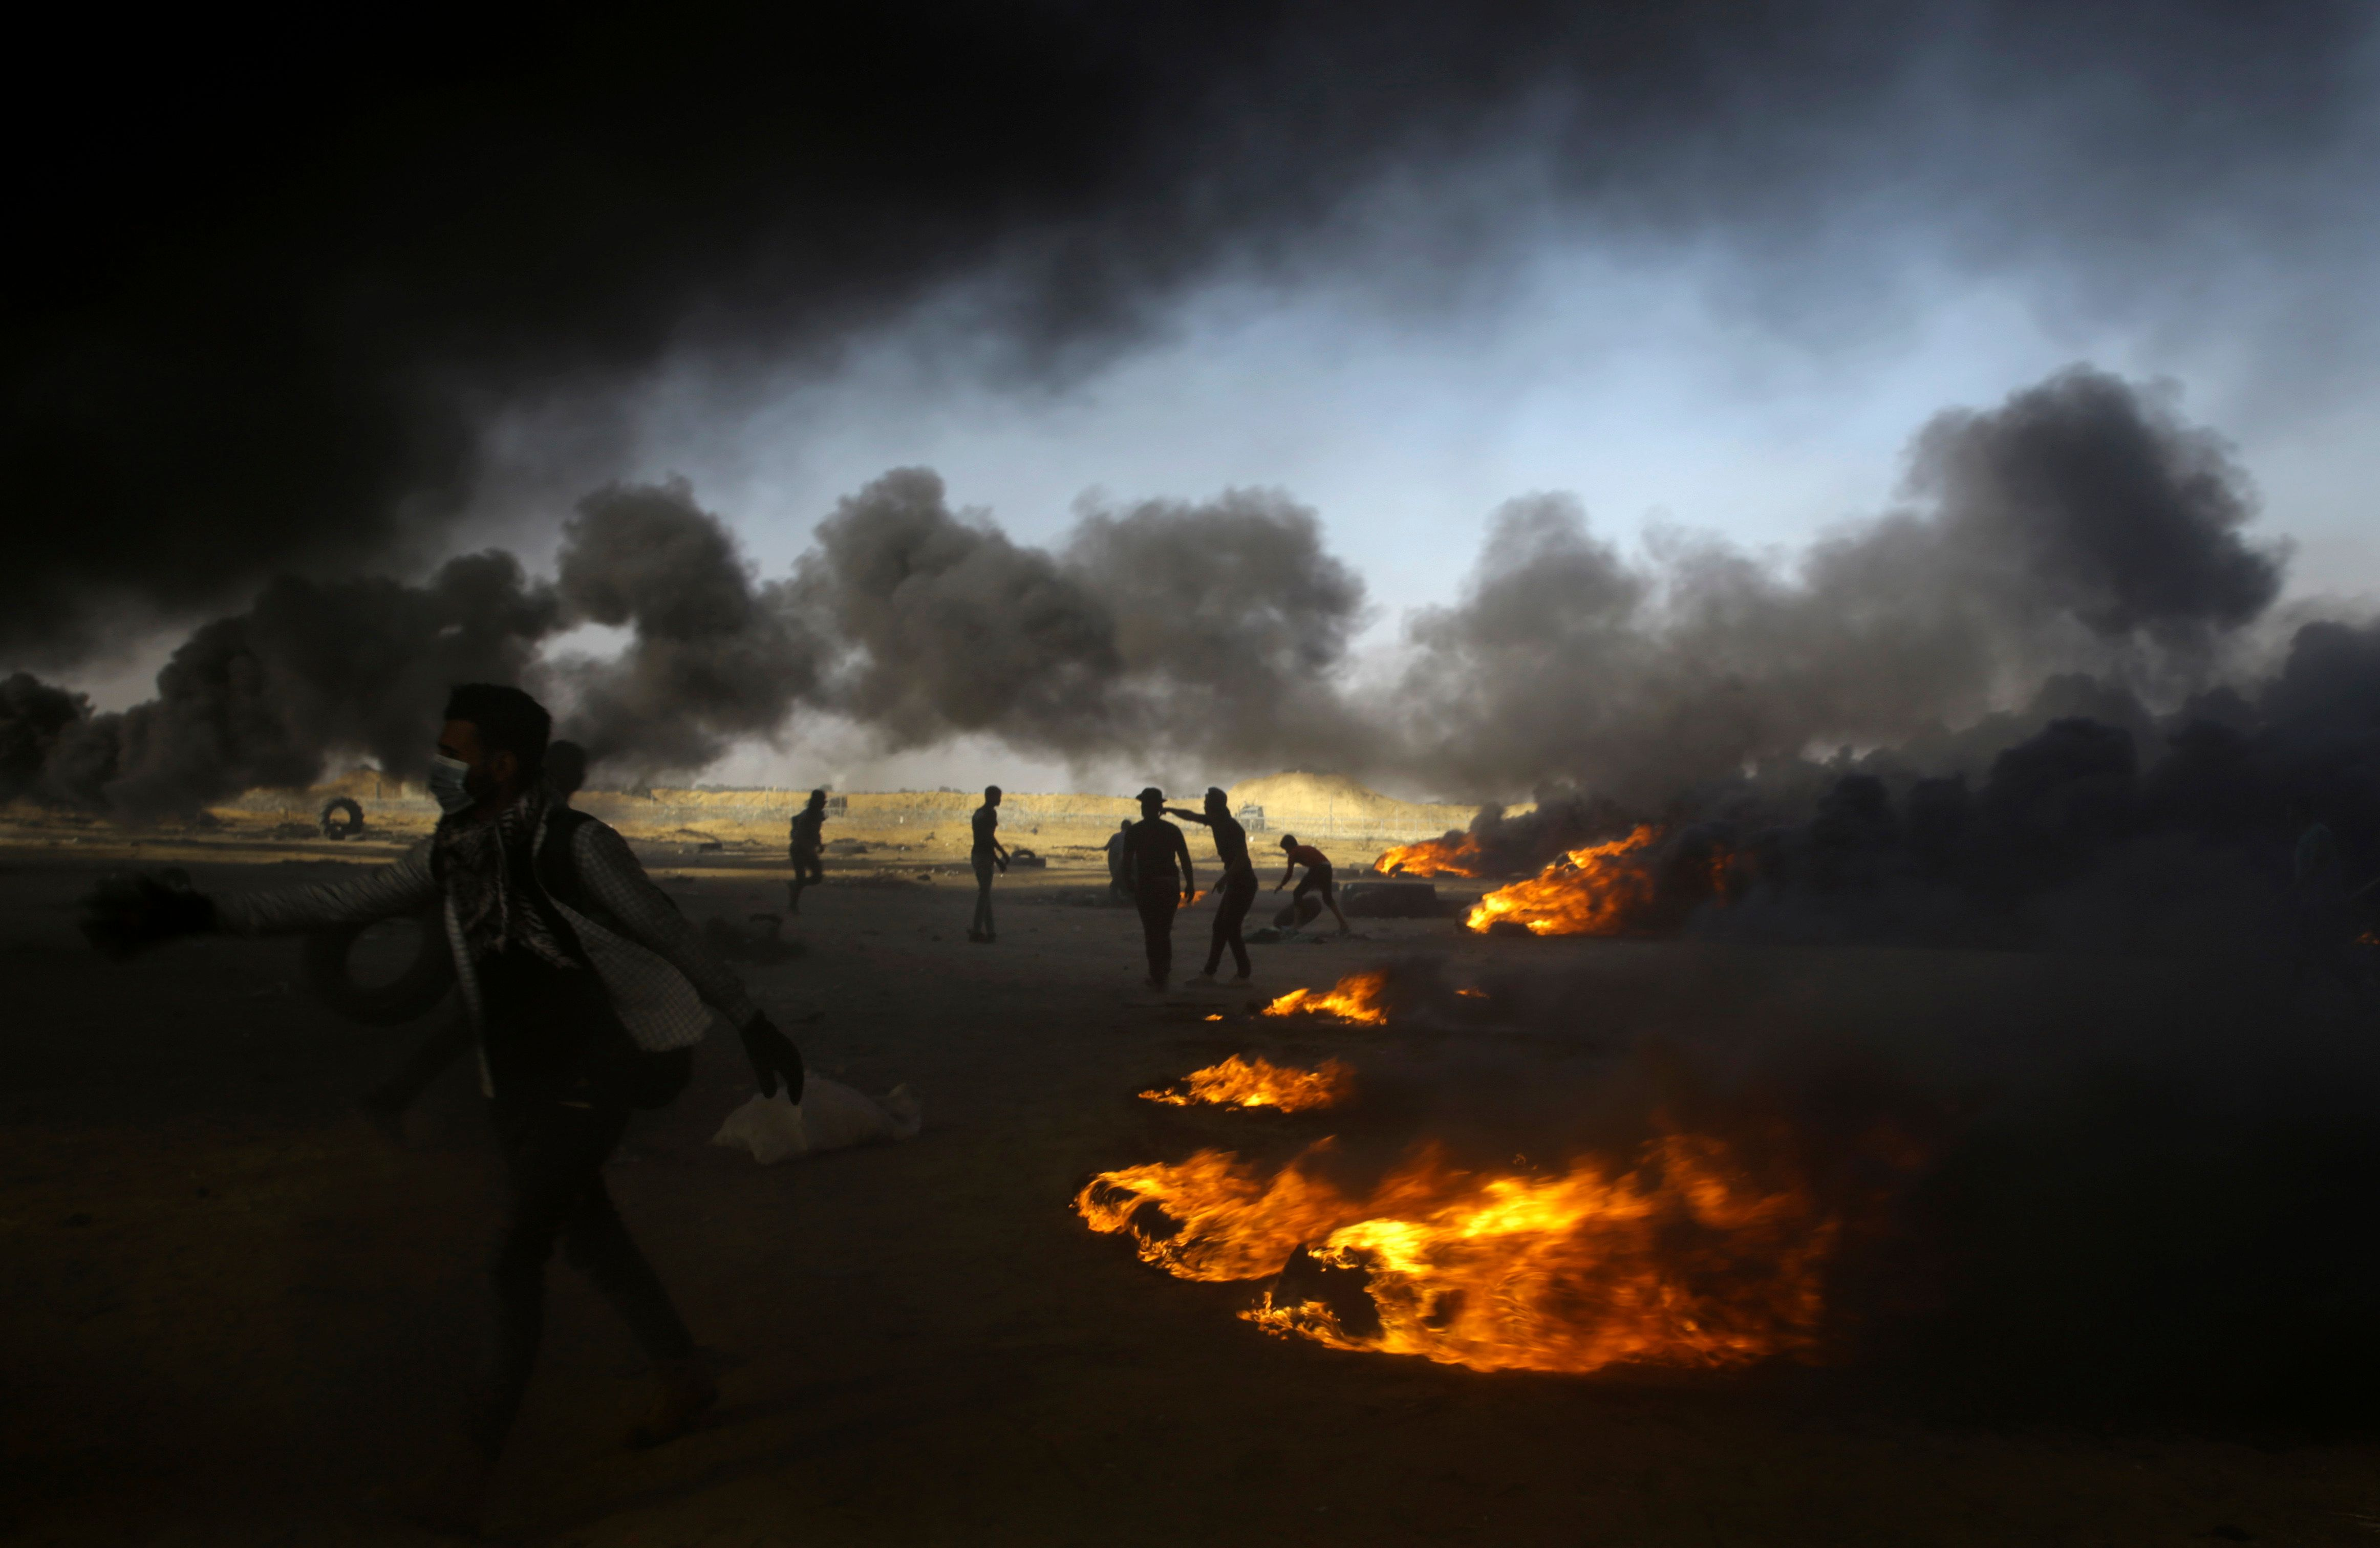 Israel says its planes bombed militant targets in Gaza